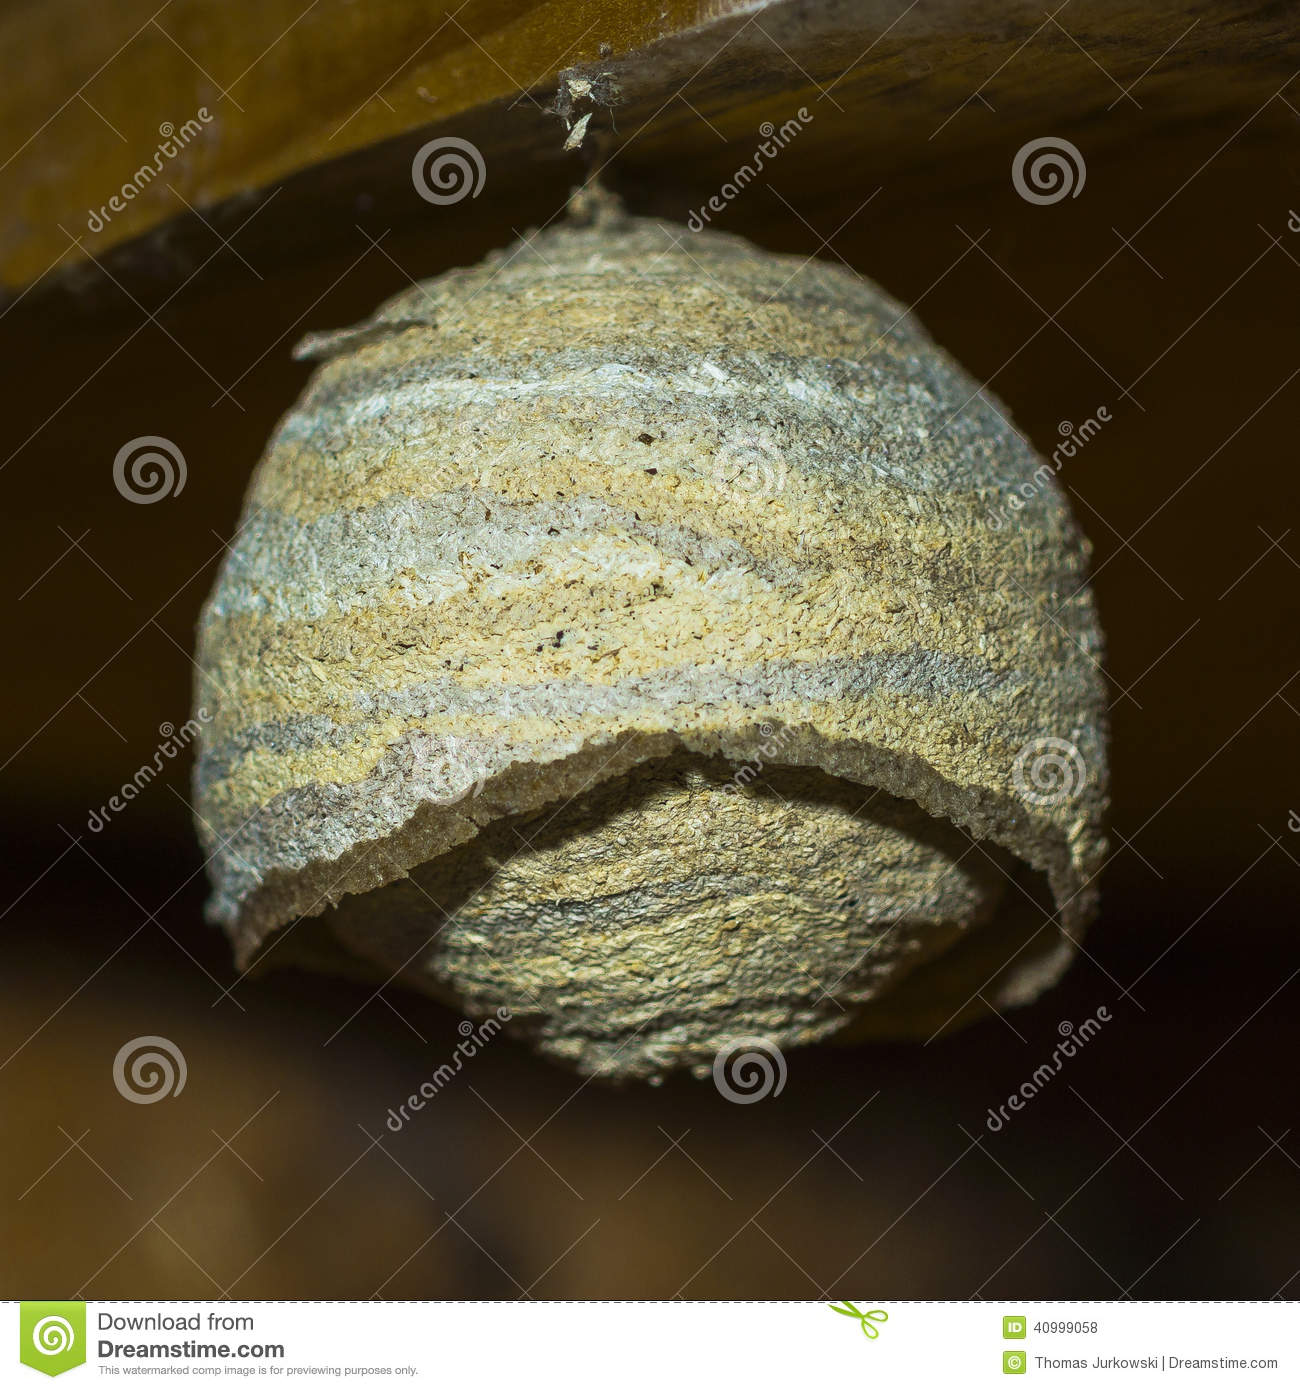 Wasp Nest Stock Photo   Image  40999058